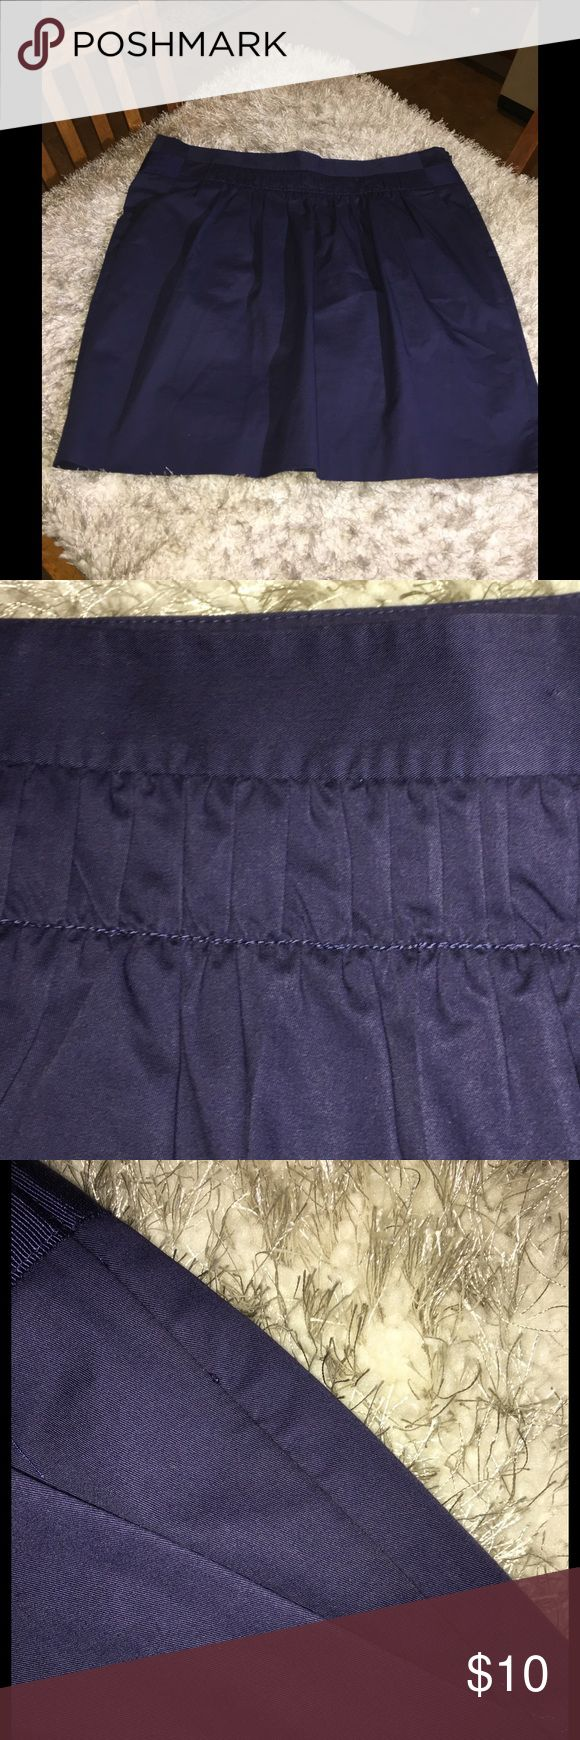 Banana Republic Navy Blue Pencil Skirt Size 12 Banana Republic navy blue skirt.  Pencil style, front has s Pleated accent in front.  Size 12.  Skirt is 18.5 inches long.   Great condition.   Important:   All items are freshly laundered as applicable prior to shipping (new items and shoes excluded).  Not all my items are from pet/smoke free homes.  Price is reduced to reflect this!   Thank you for looking! Banana Republic Skirts Pencil